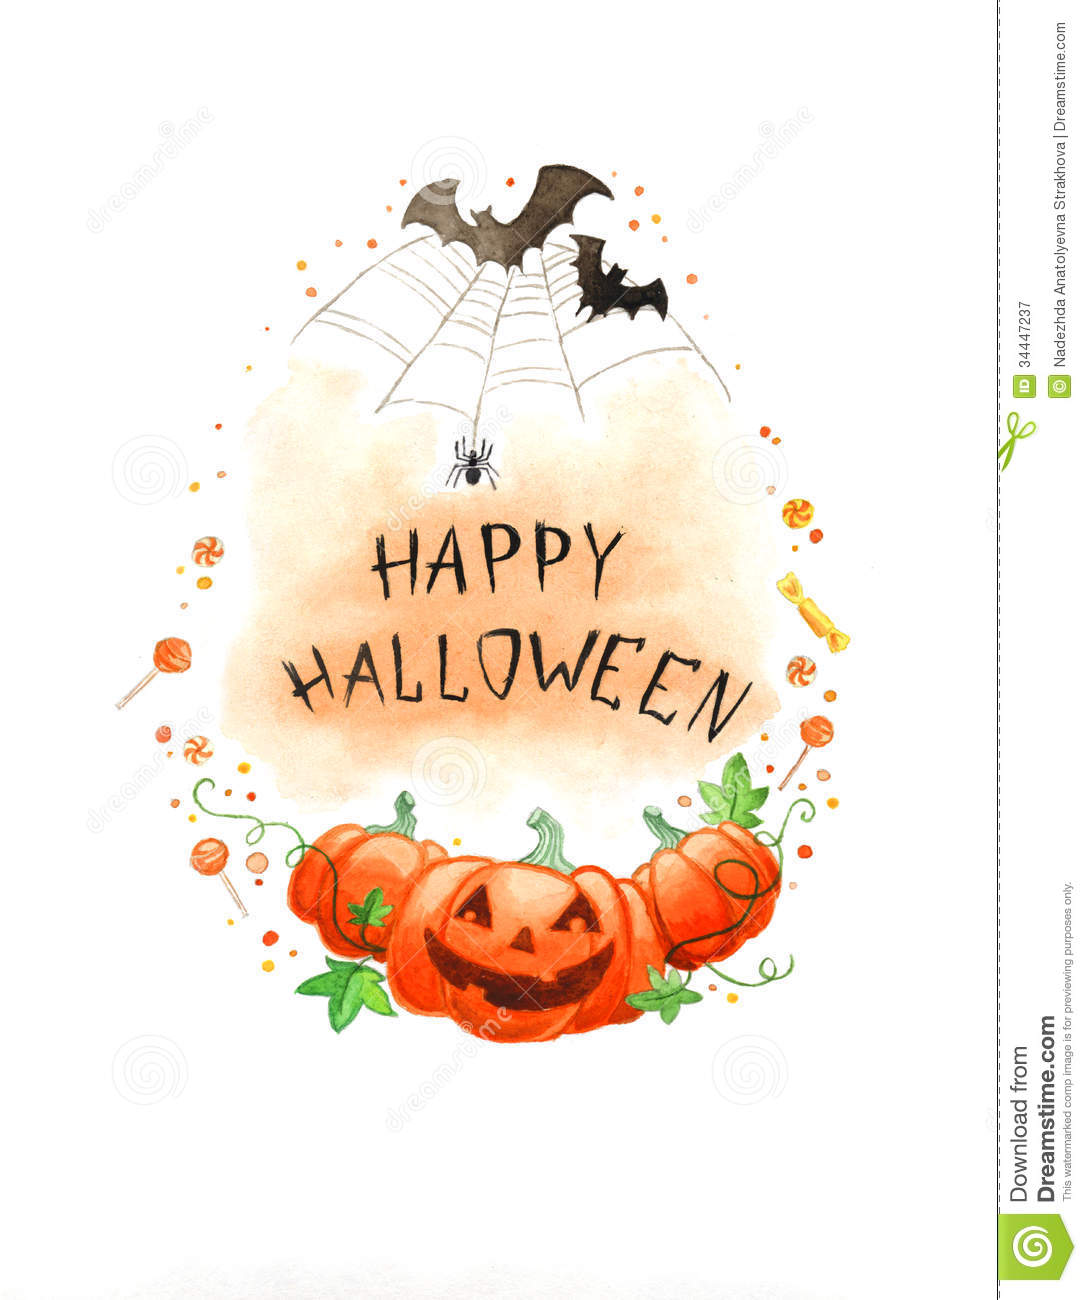 Watercolor Painting Happy Halloween Frame Stock ...